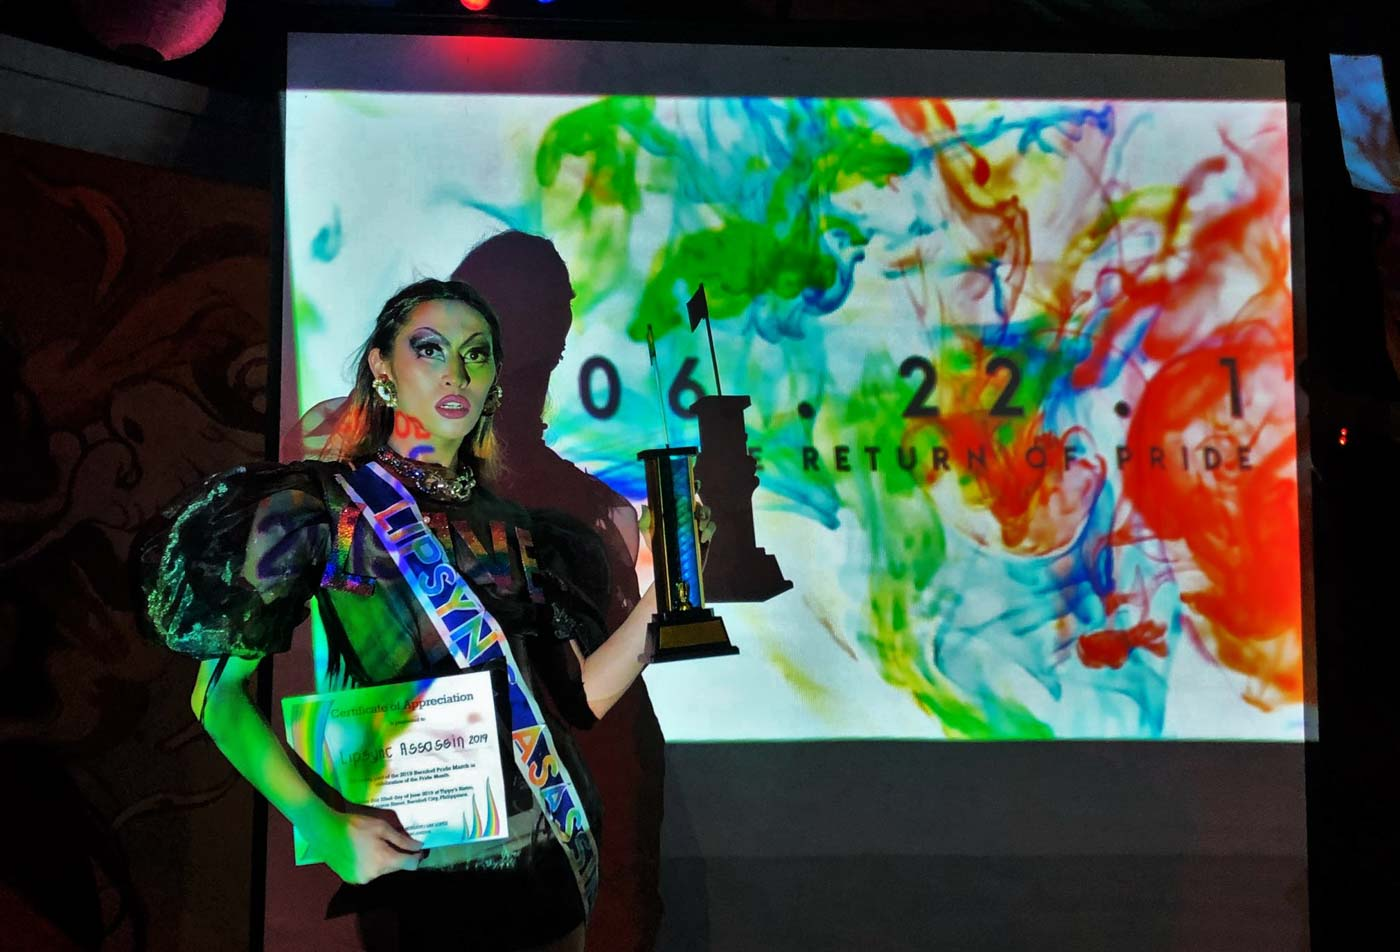 LIP SYNC ASSASSIN. Local drag queen Yudip*ta wins the lip sync contest with a performance to 'Paparazzi' by Lady Gaga. Photo by Gino Lopez